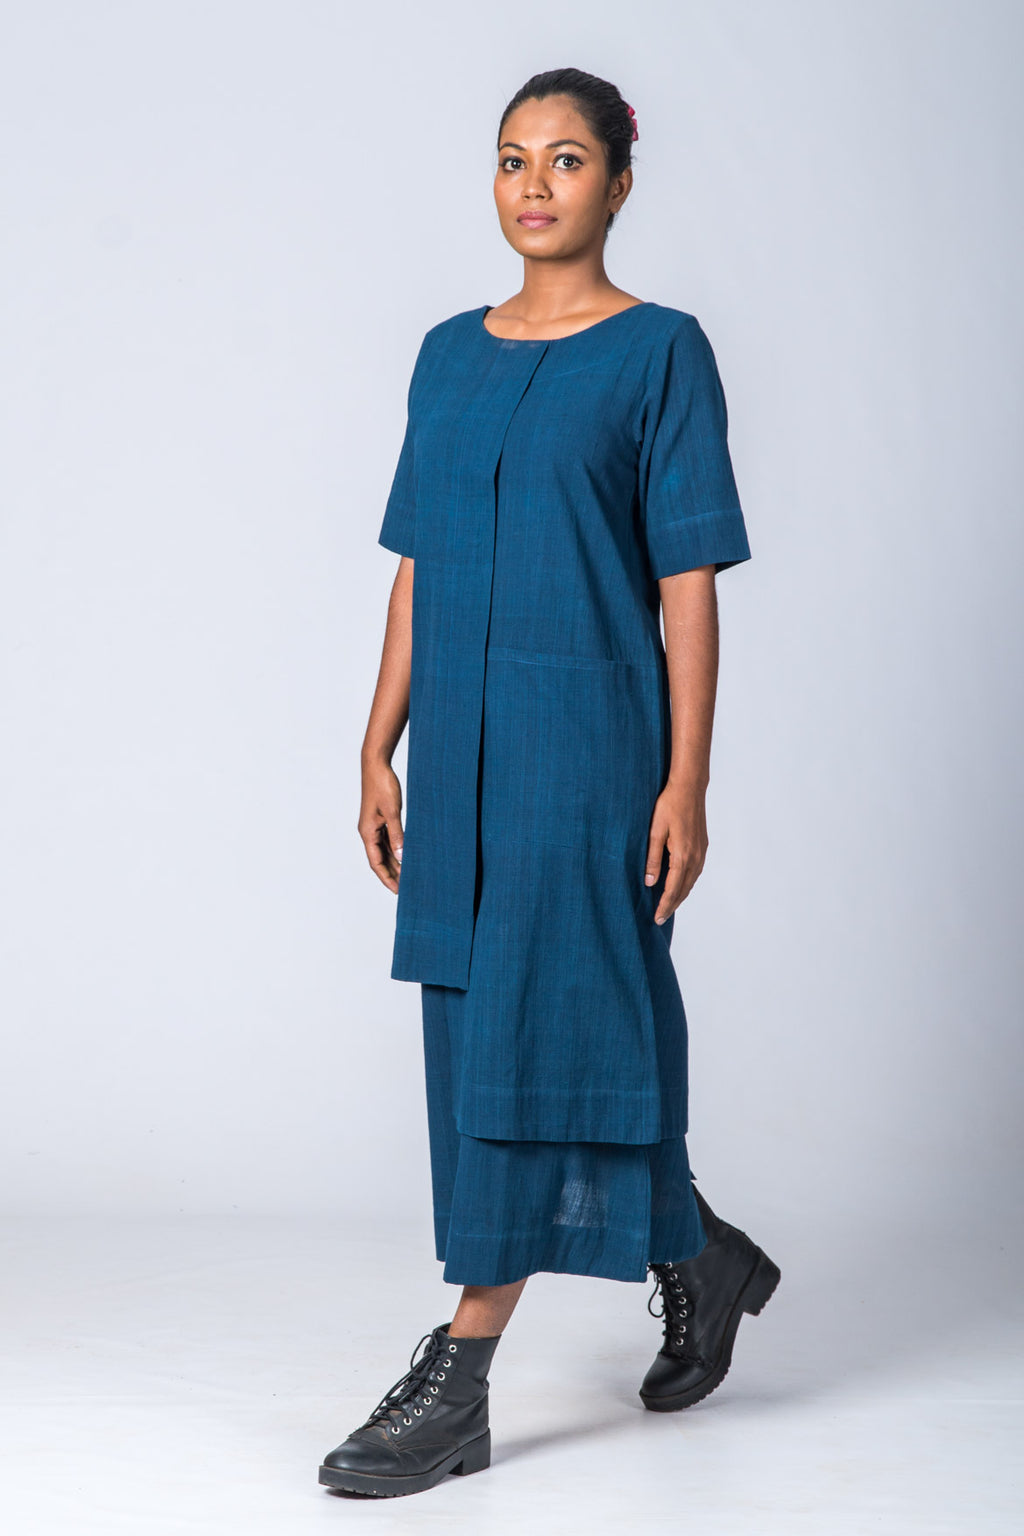 Natural Indigo Cotton Dress - SANGYA - Upasana Design Studio